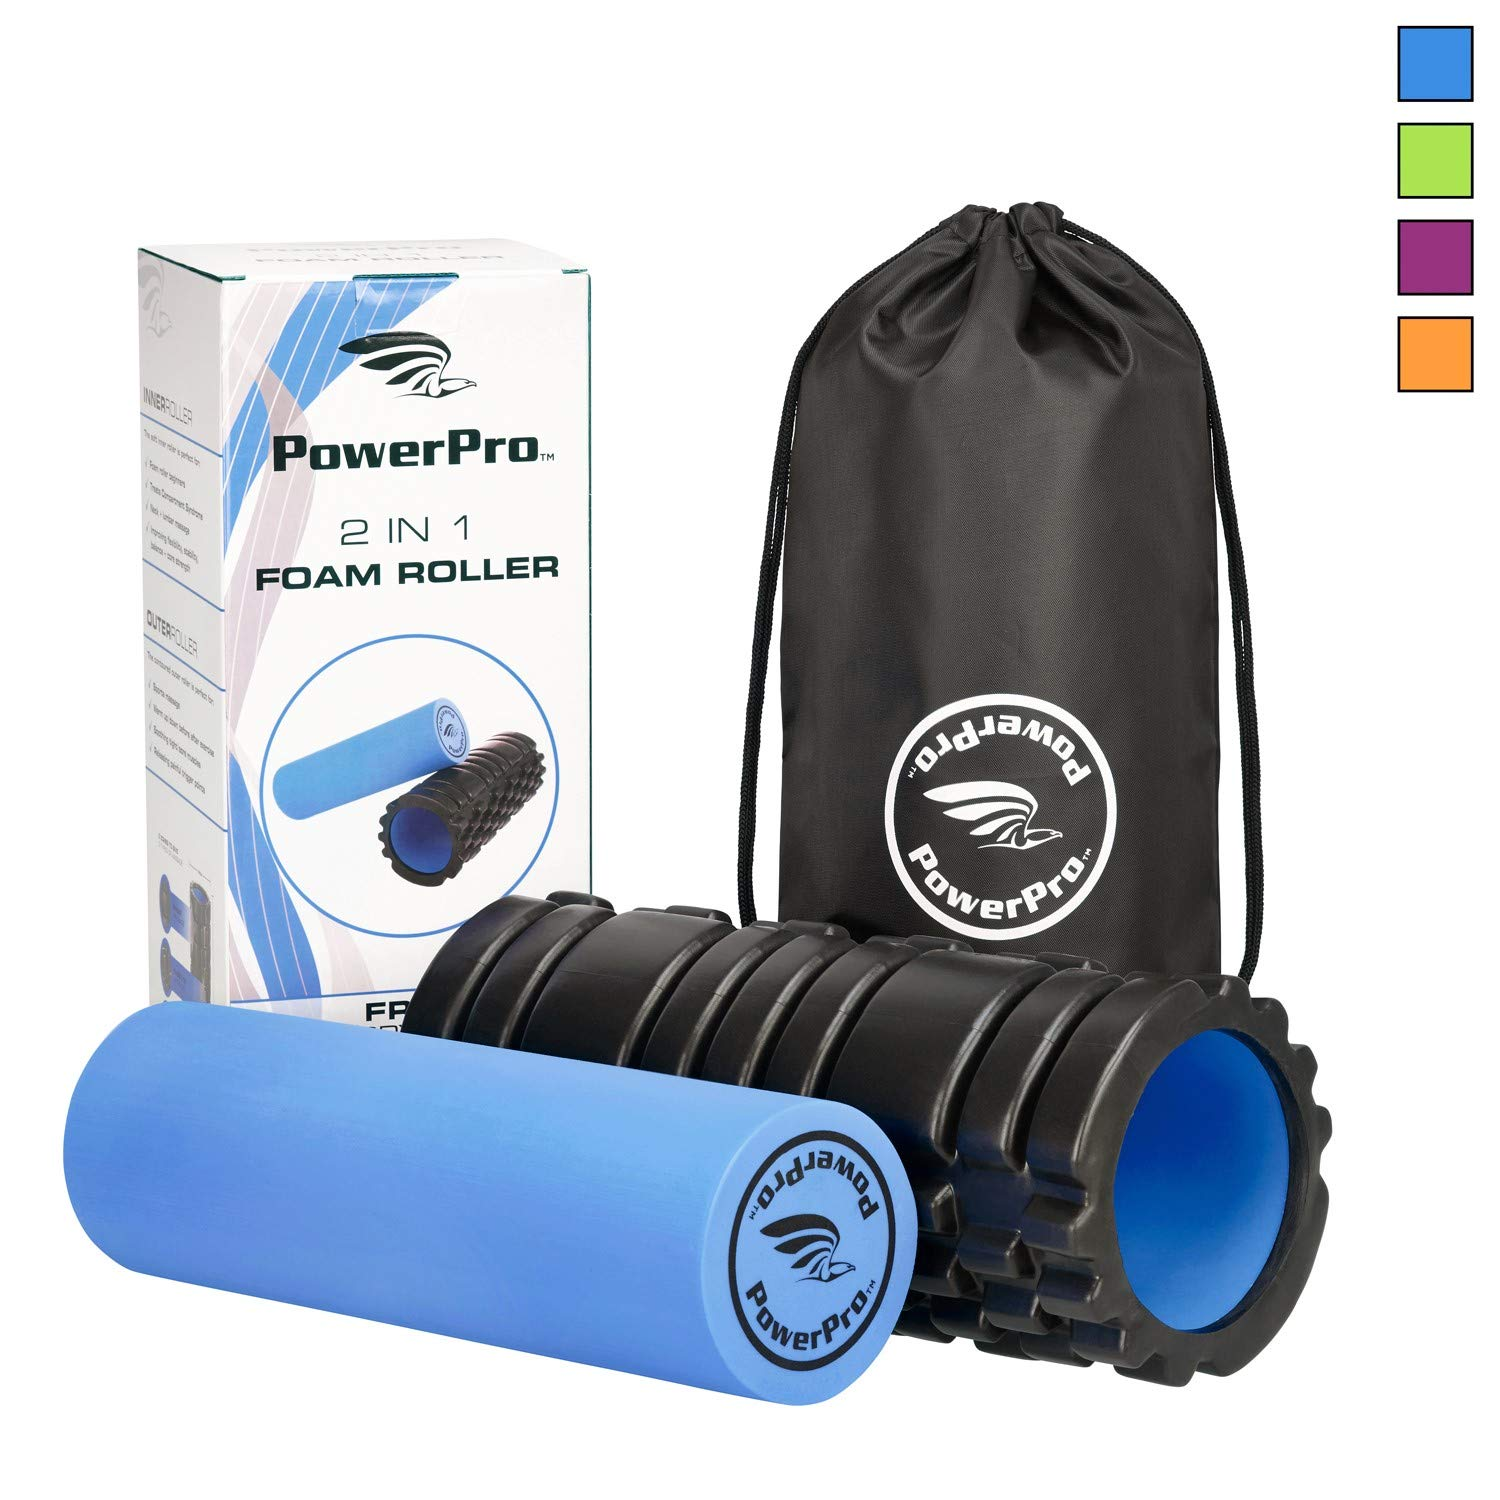 PowerPro 2-in-1 Foam Rollers: 13'' & 24'': Trigger Point Release Roller Massager. Plus Smooth Muscle Massage Roller. 2X eBooks & Carry Case